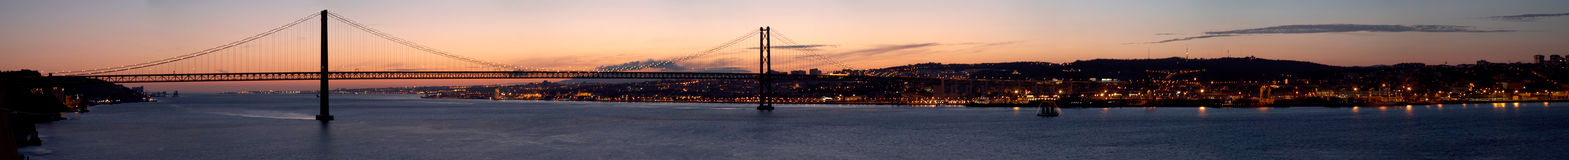 Free Panorama Of Bridge 25 De Abril Lisbon, Portugal Royalty Free Stock Image - 361606